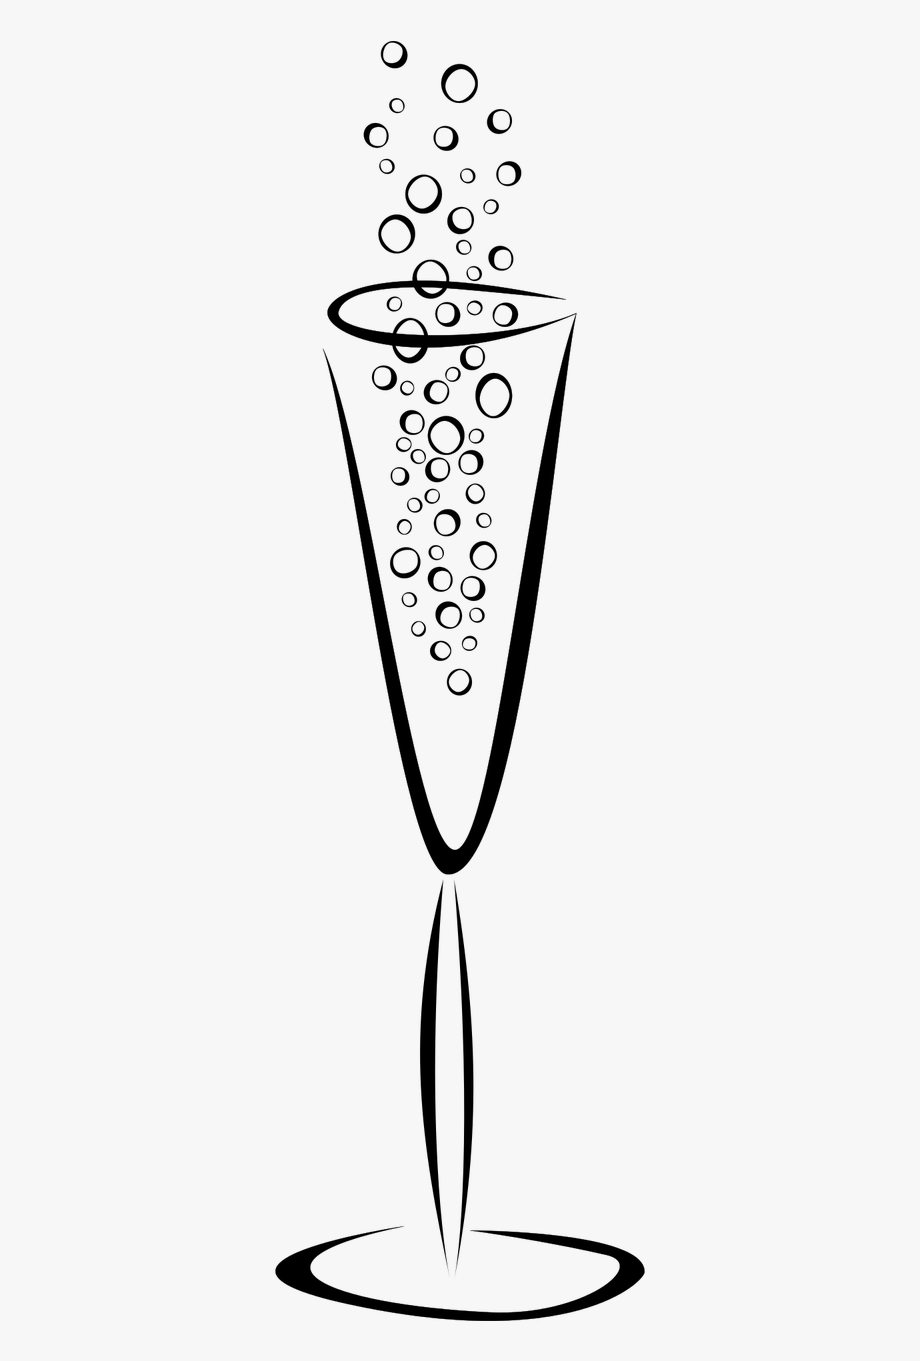 Champagne glasses clipart pictures banner transparent library Bubbles Champagne Glass Free Picture - Champagne Glasses Clipart ... banner transparent library